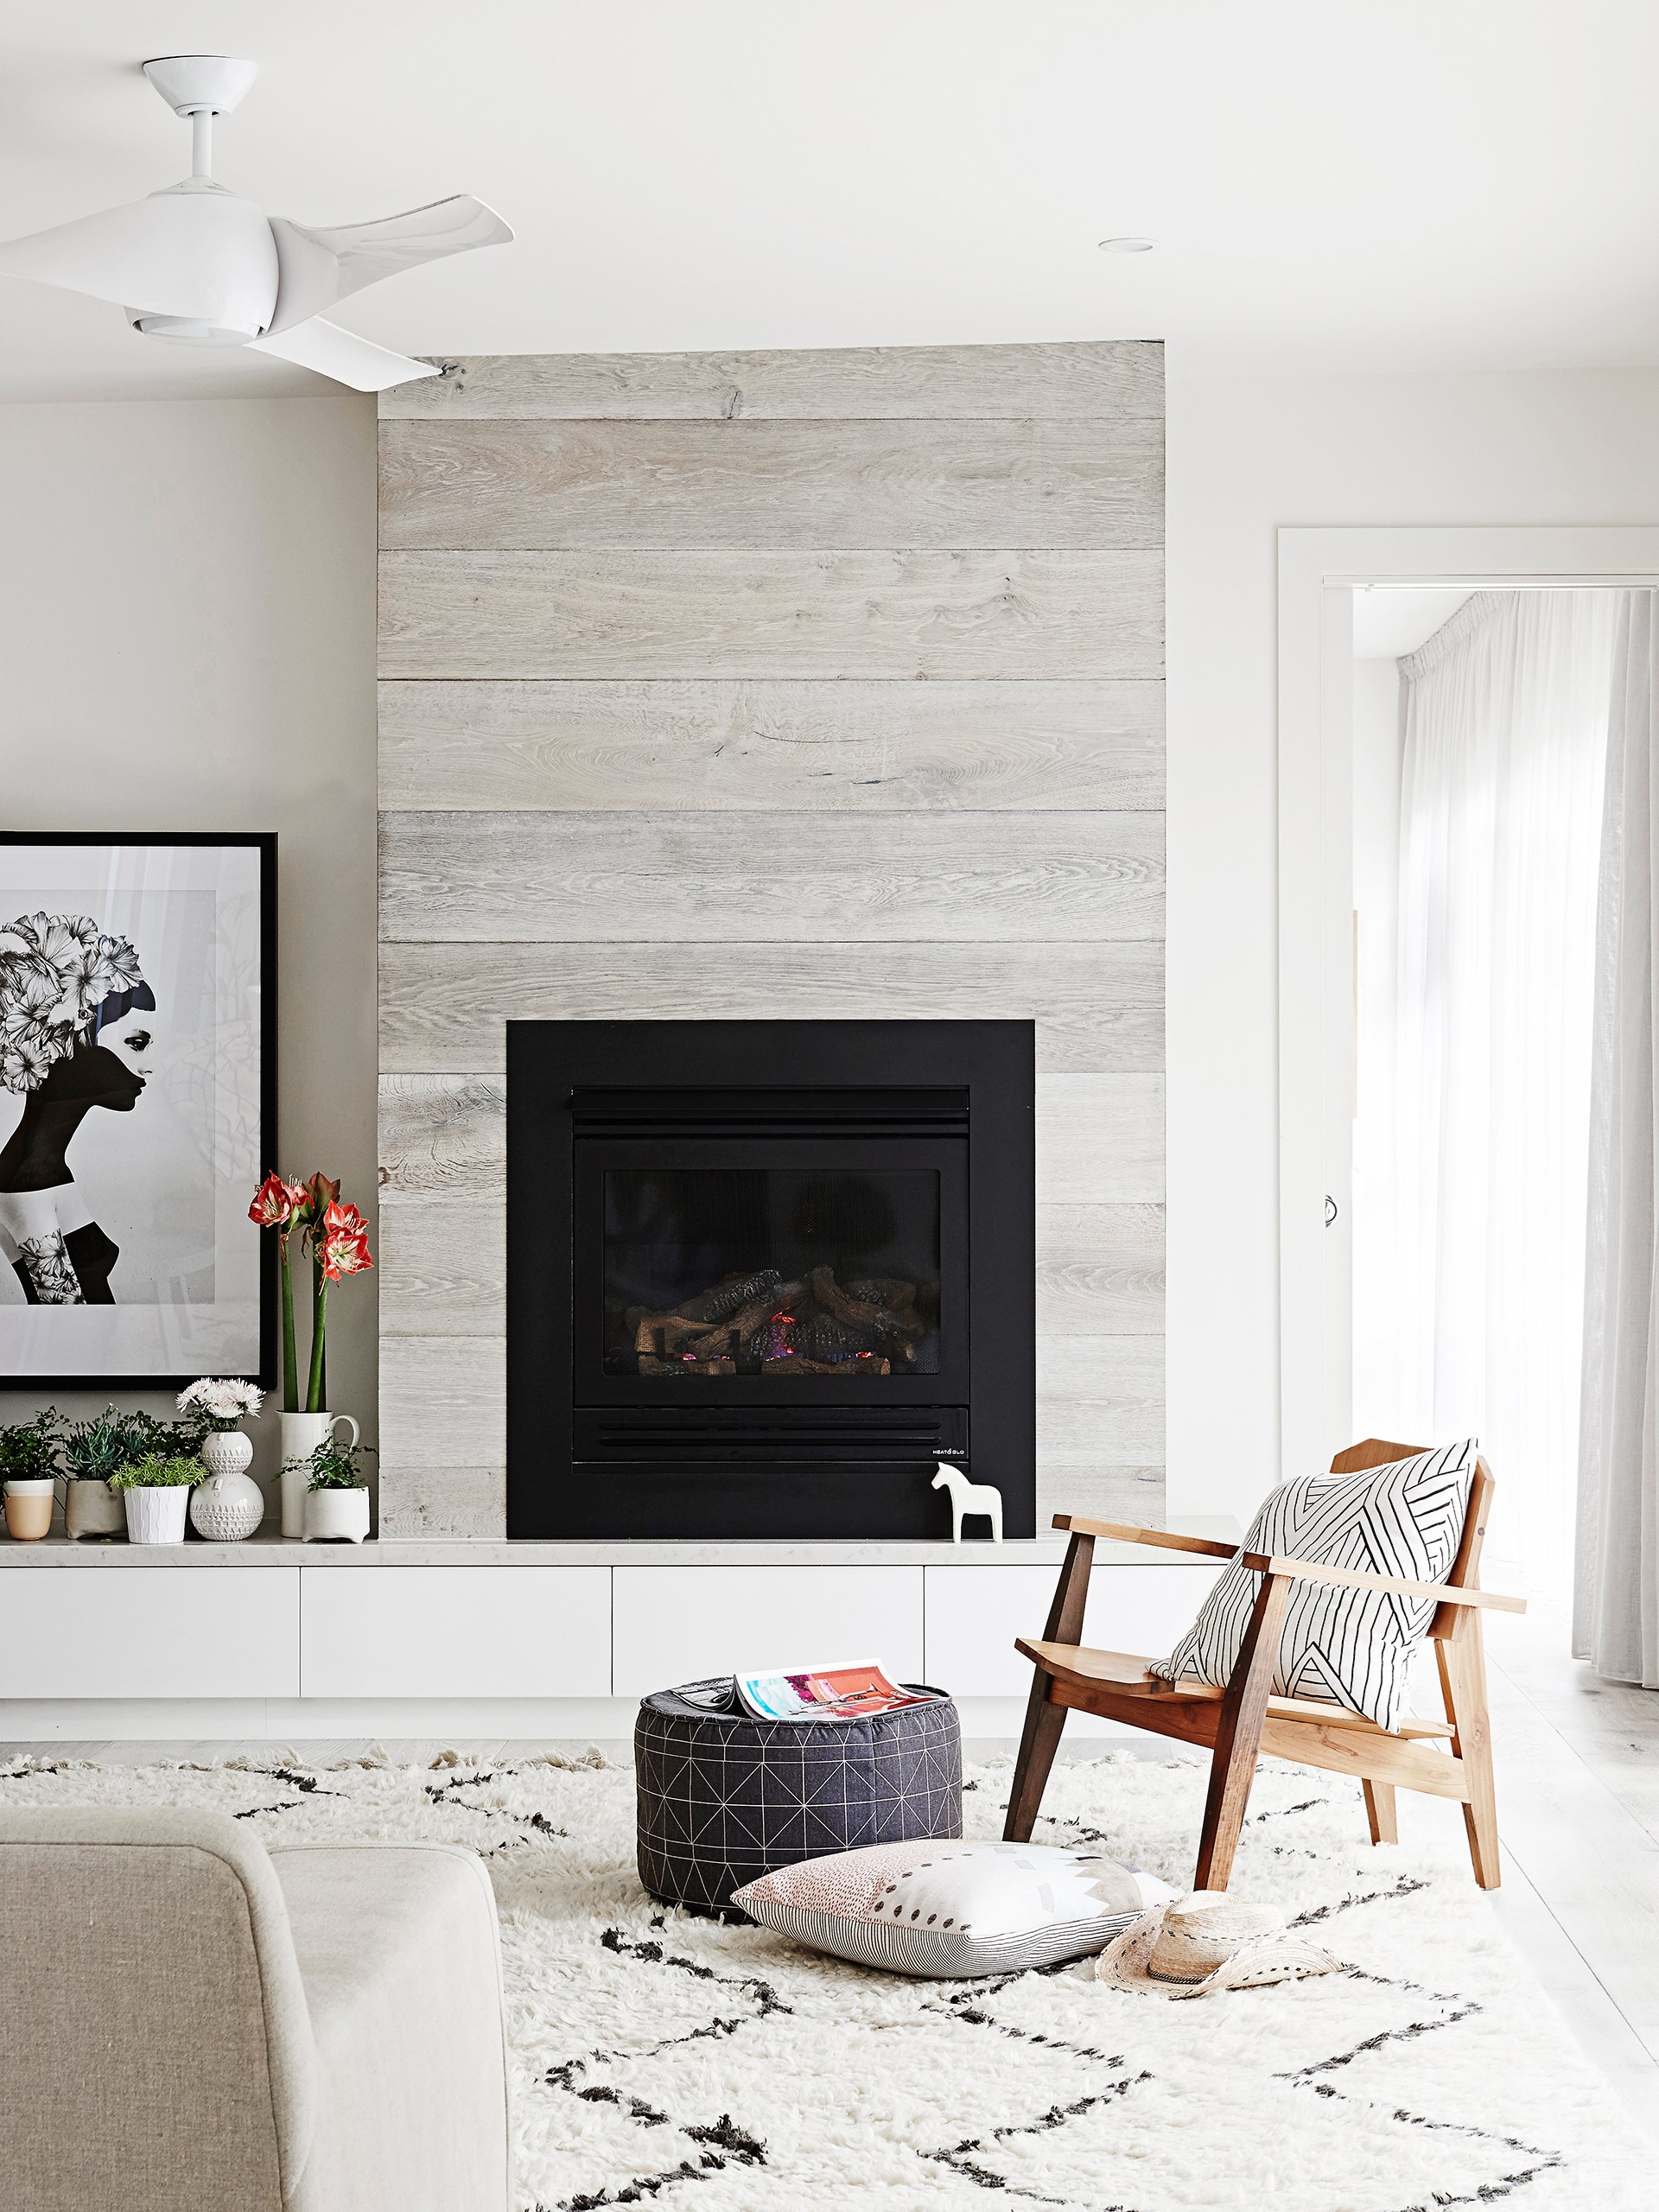 """[Discover eight stylish ways to warm your home for winter here >](http://www.homestolove.com.au/8-stylish-ways-to-warm-up-the-home-for-winter-3377